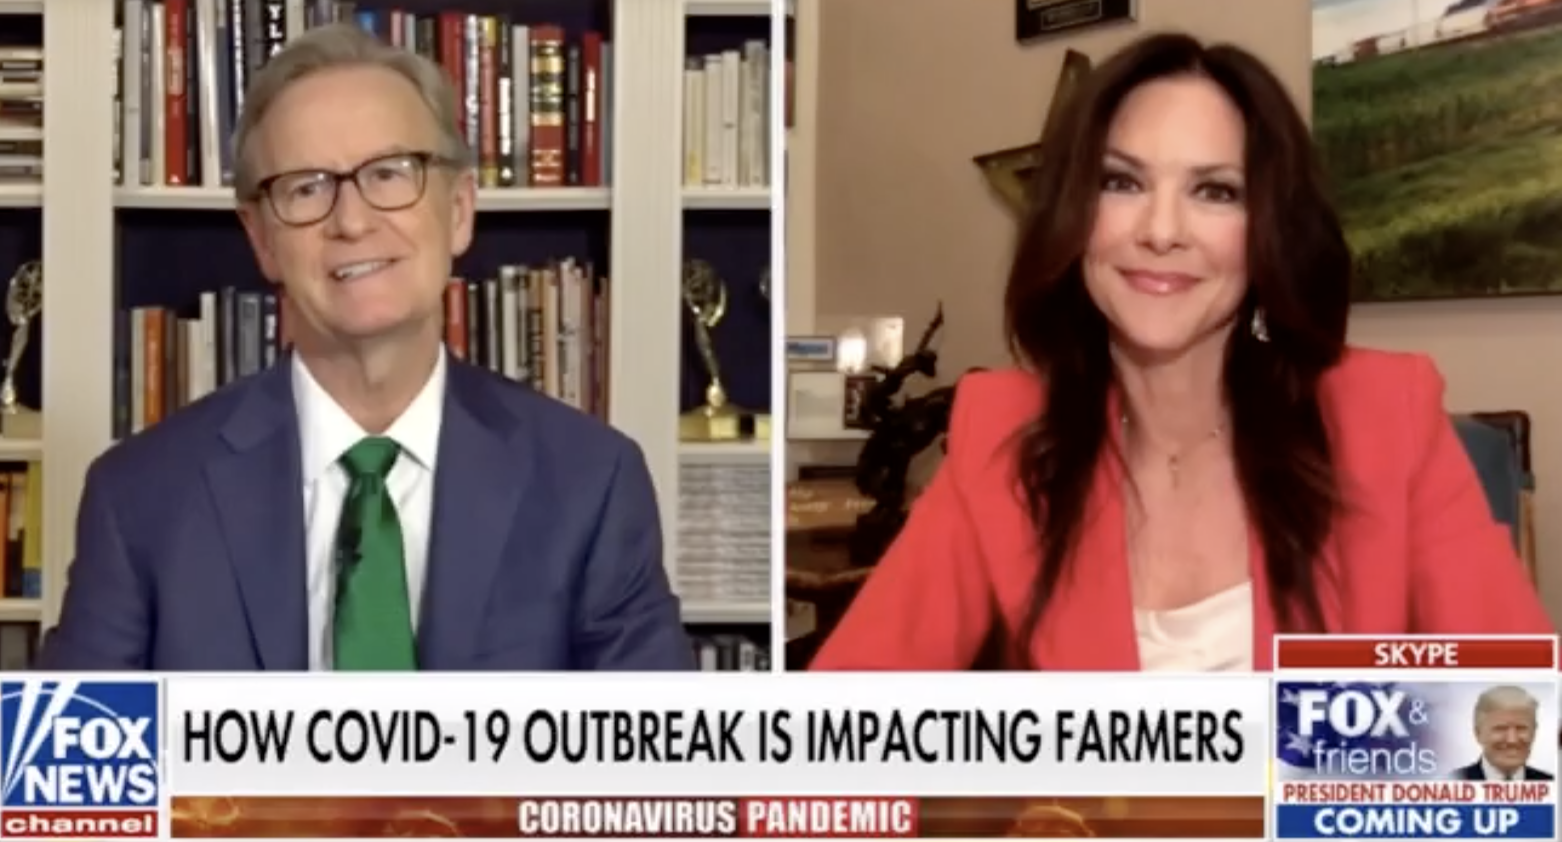 Fox & Friends: Mary Blackmon Speaks out on Covid-19 Outbreak & Farmers